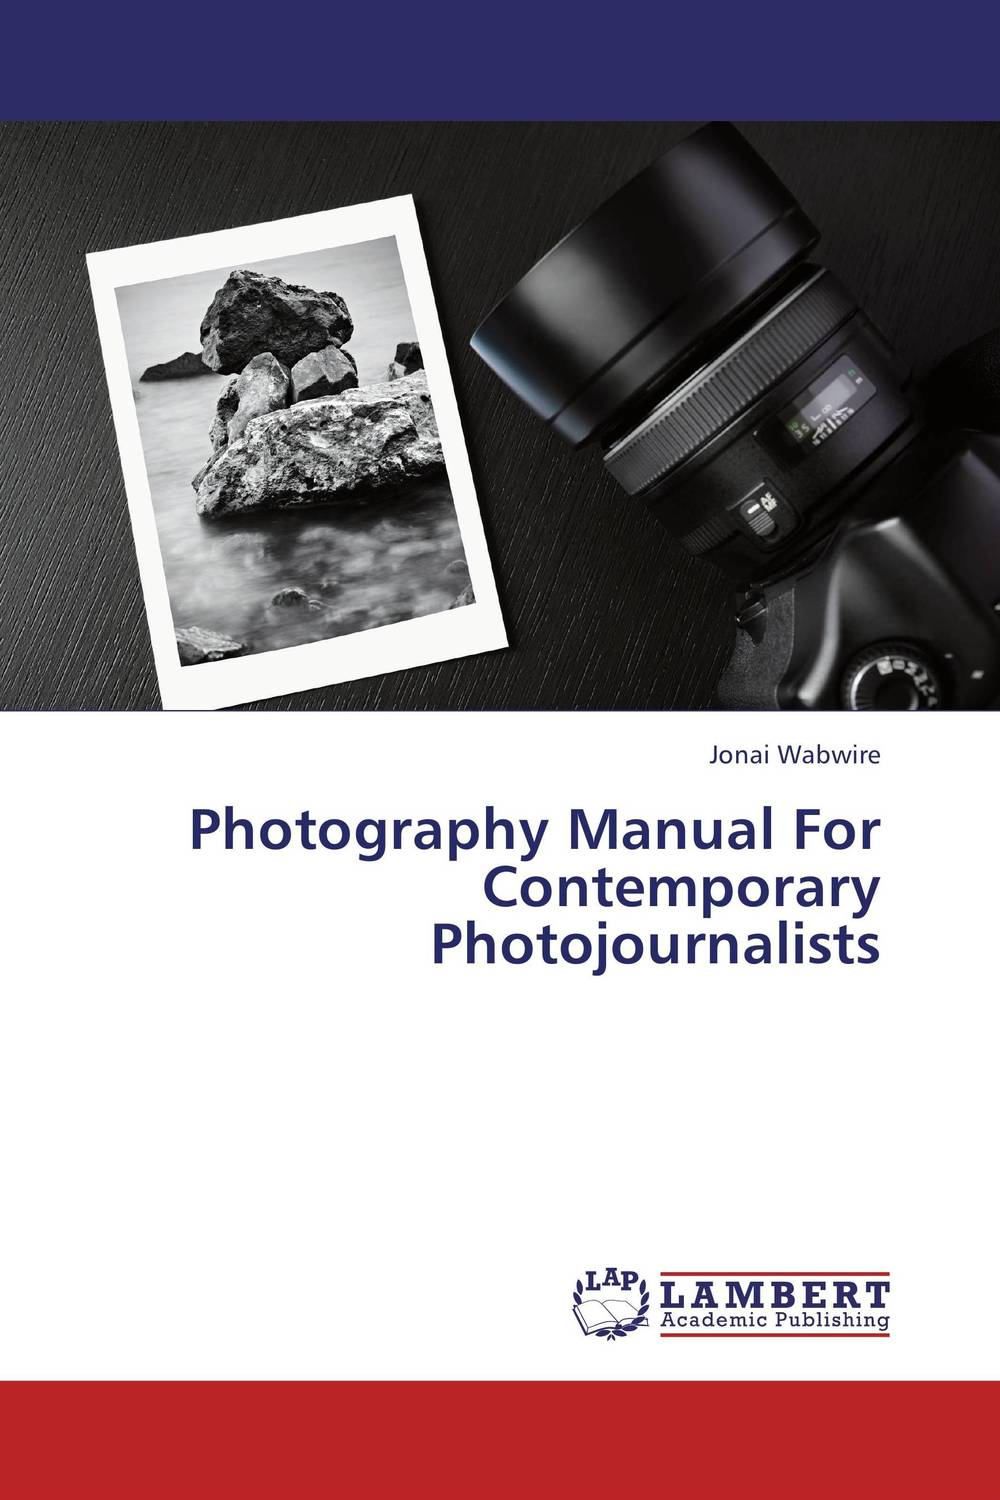 Photography Manual For Contemporary Photojournalists